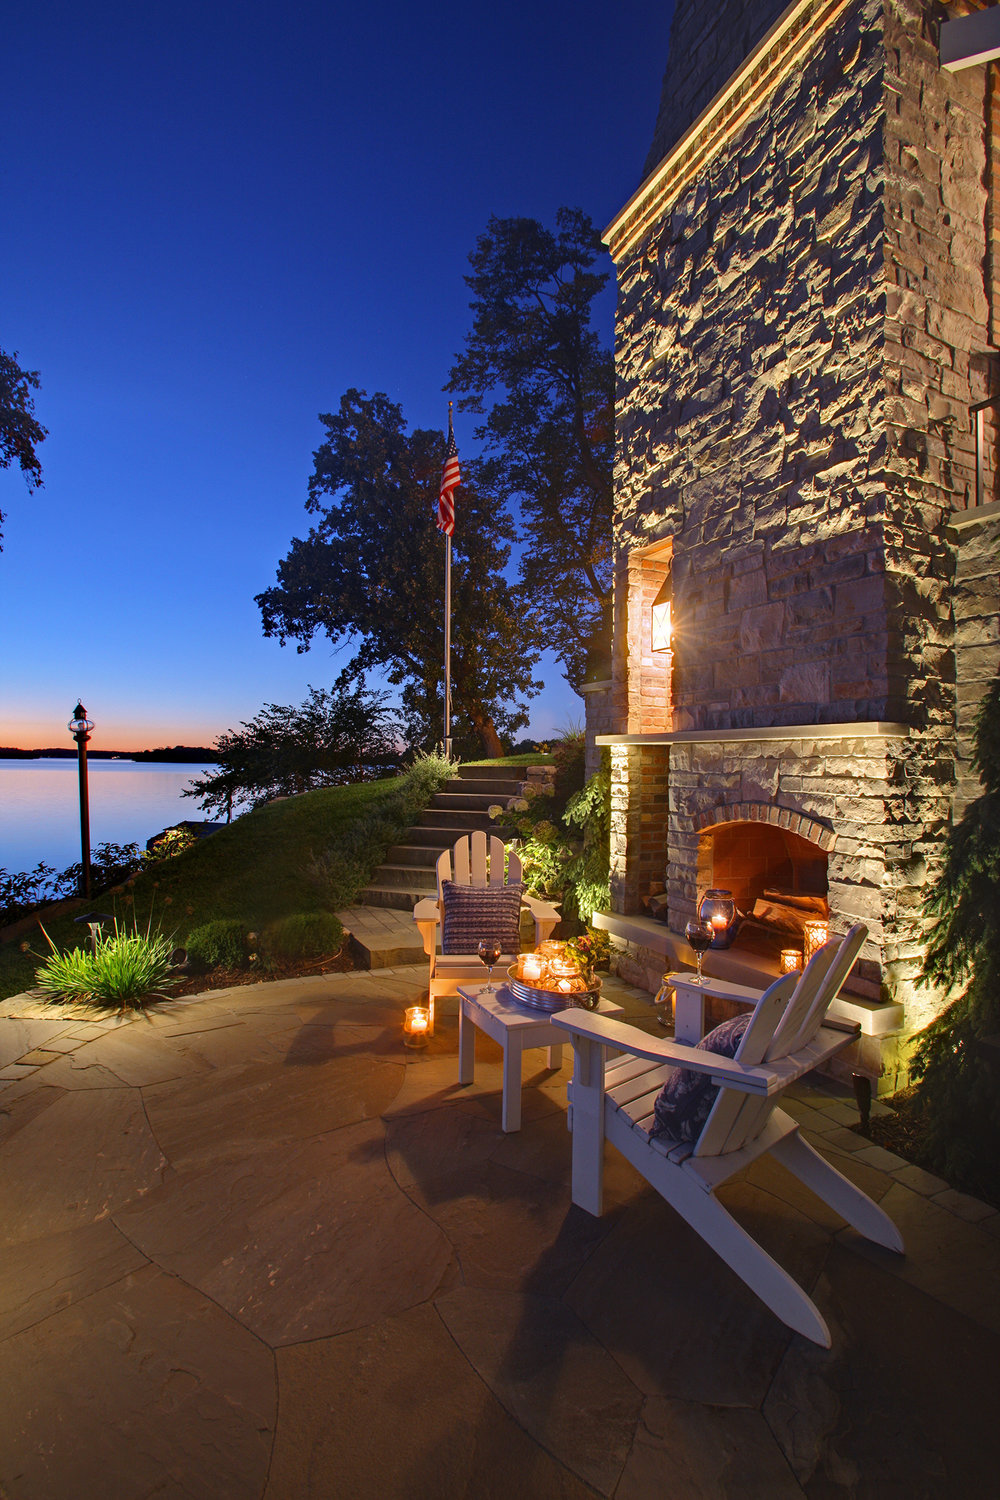 Mom's Design Build - Lake Minnetonka Fireplace stone yard design